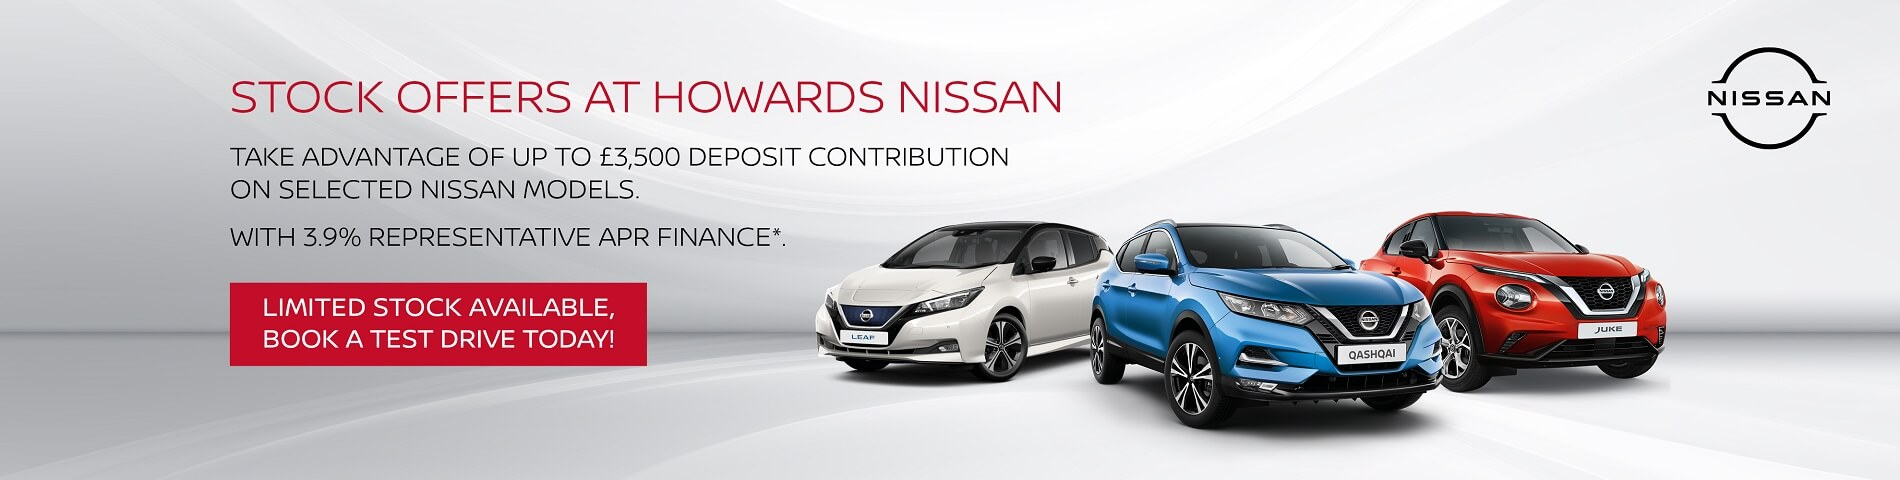 Howards Nissan Stock Offers